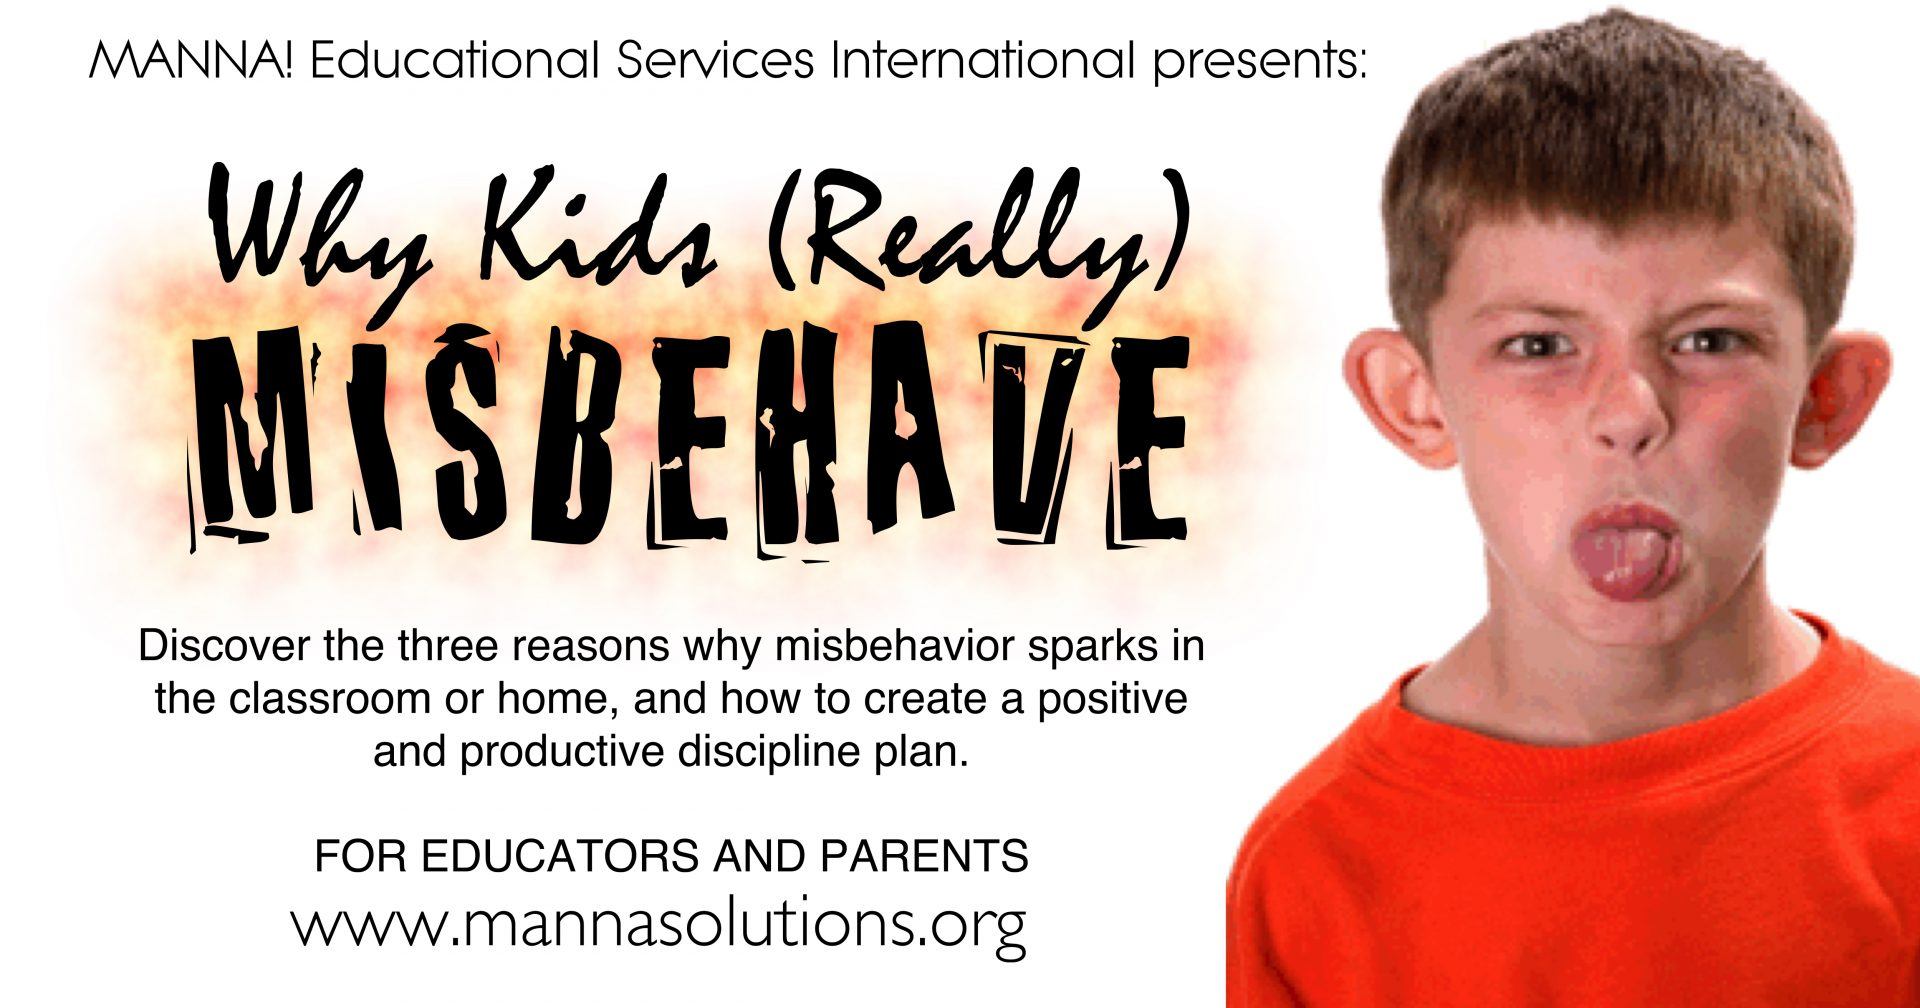 Why Kids Misbehave AD